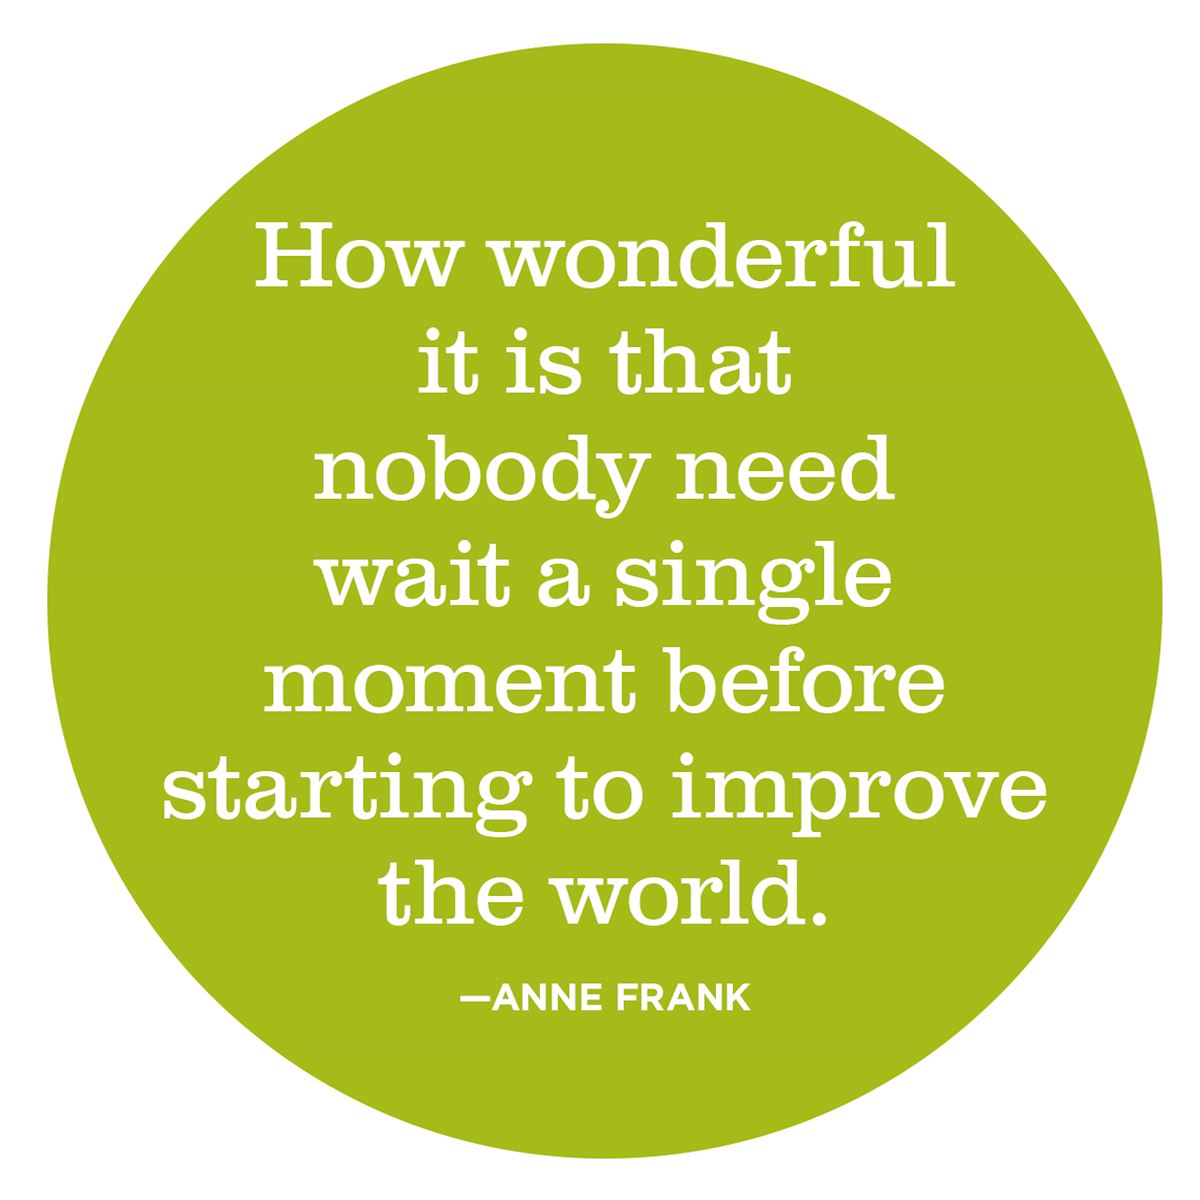 How wonderful it is that nobody need wait a single moment before starting to improve the world. — Anne Frank